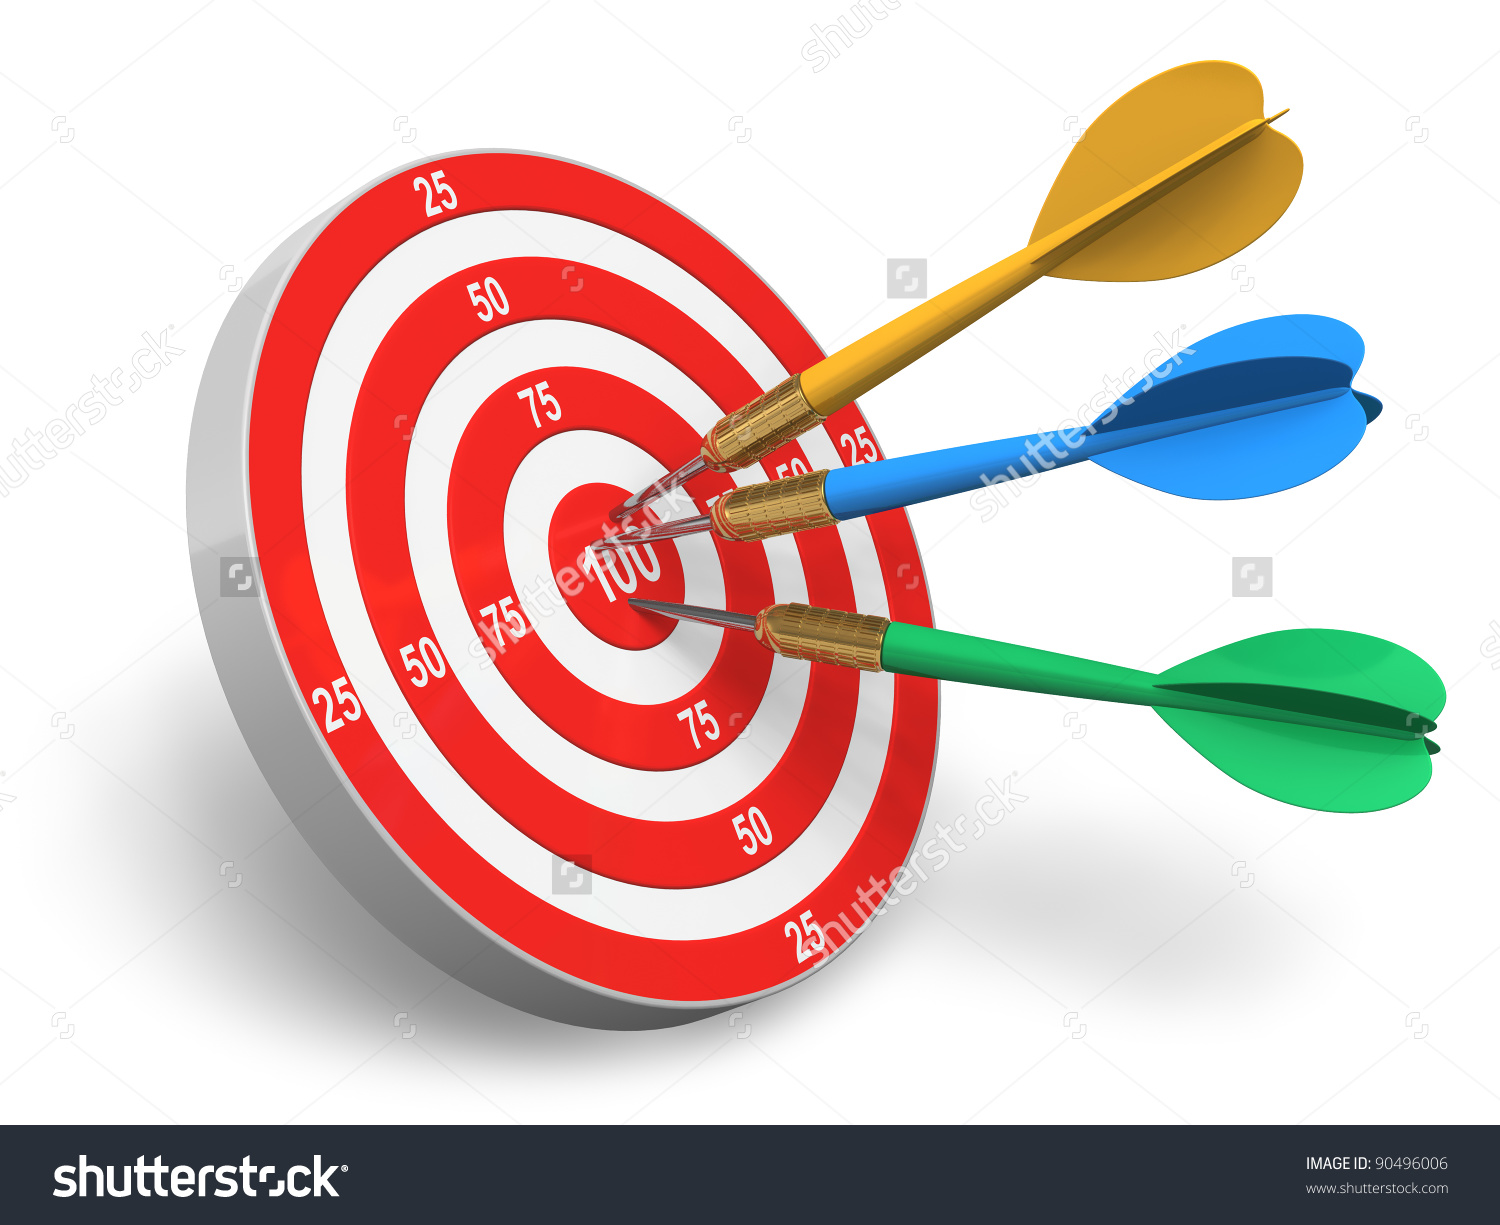 Arrow circle target clipart image free library Darts Game Red Circle Target Color Stock Illustration 90496006 ... image free library